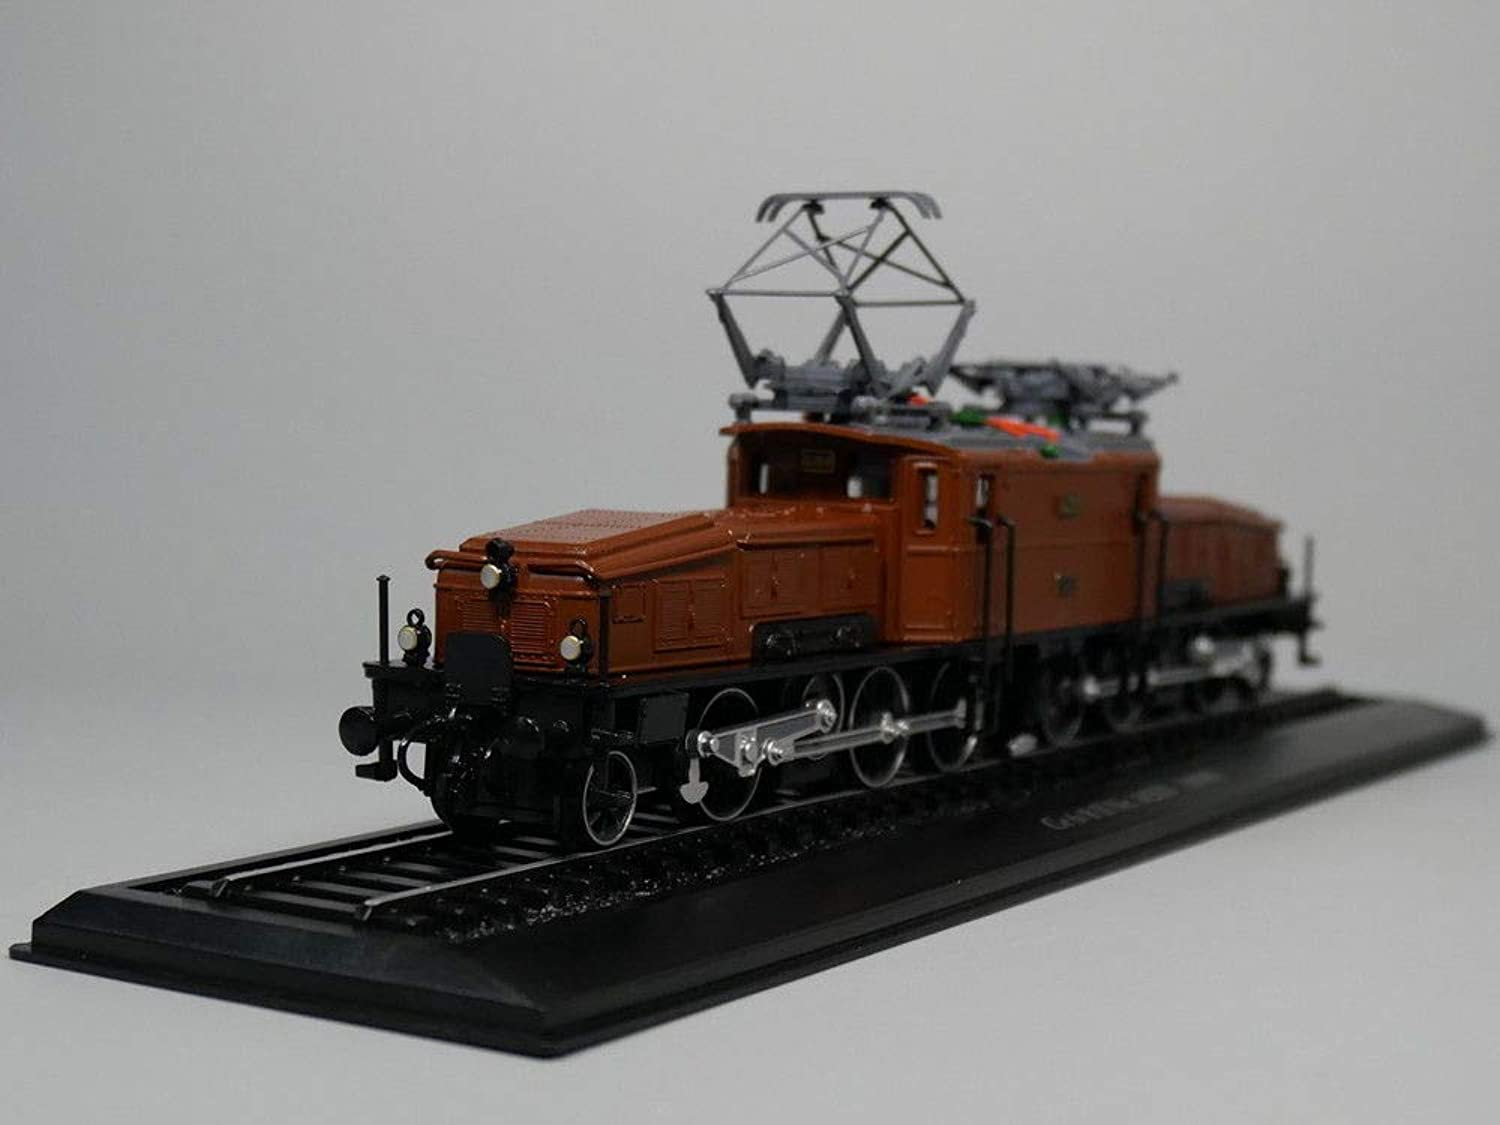 FidgetGear Ho Scale Model 1 87 Train Ce 6 8 II Nr,14253 1919 Diecast Model Train